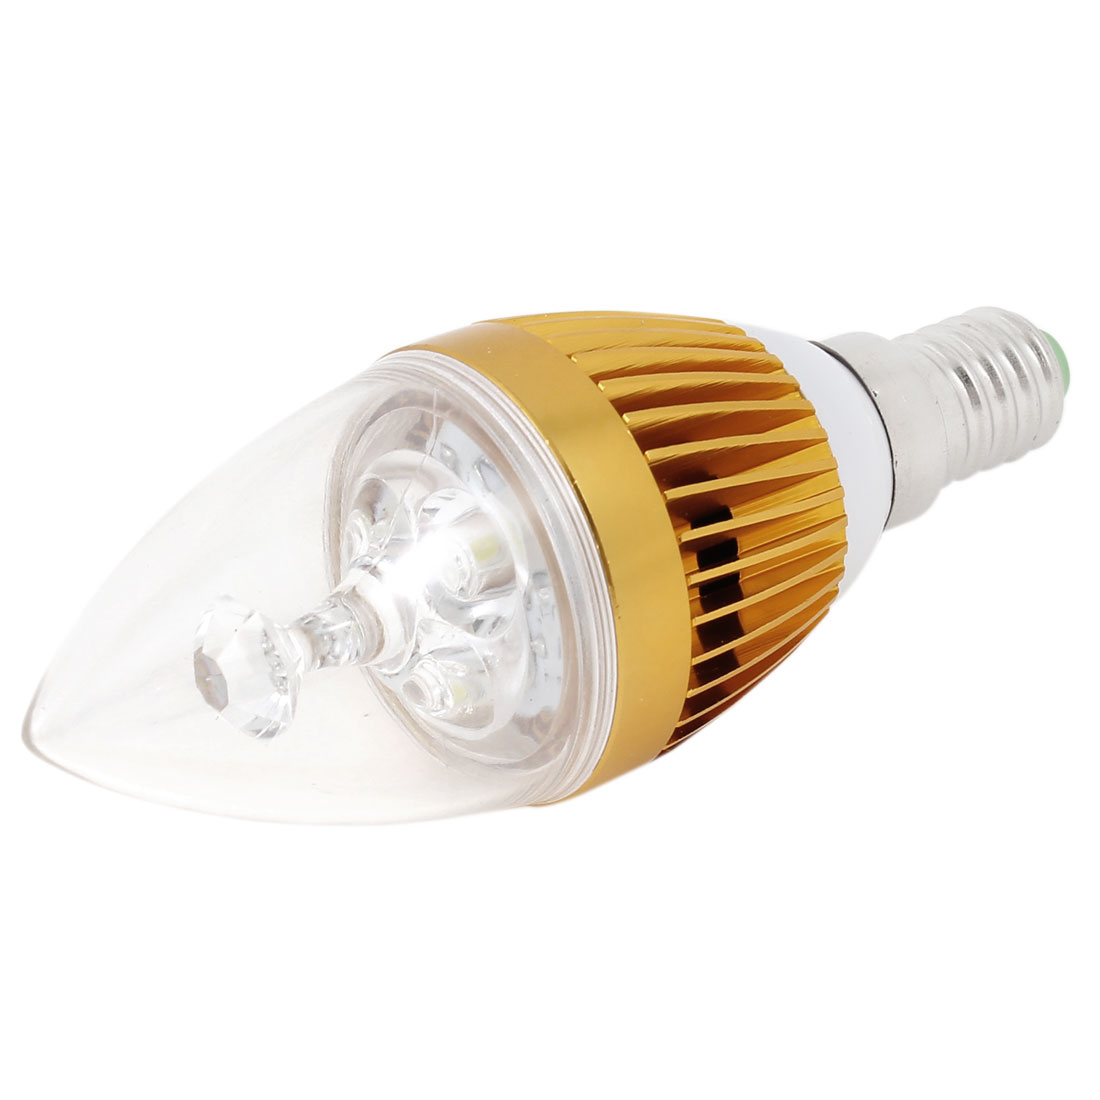 AC 85-265V E14 3W Power 3-LED Pure White Ceiling Downlight Candle Light Lamp Bulb